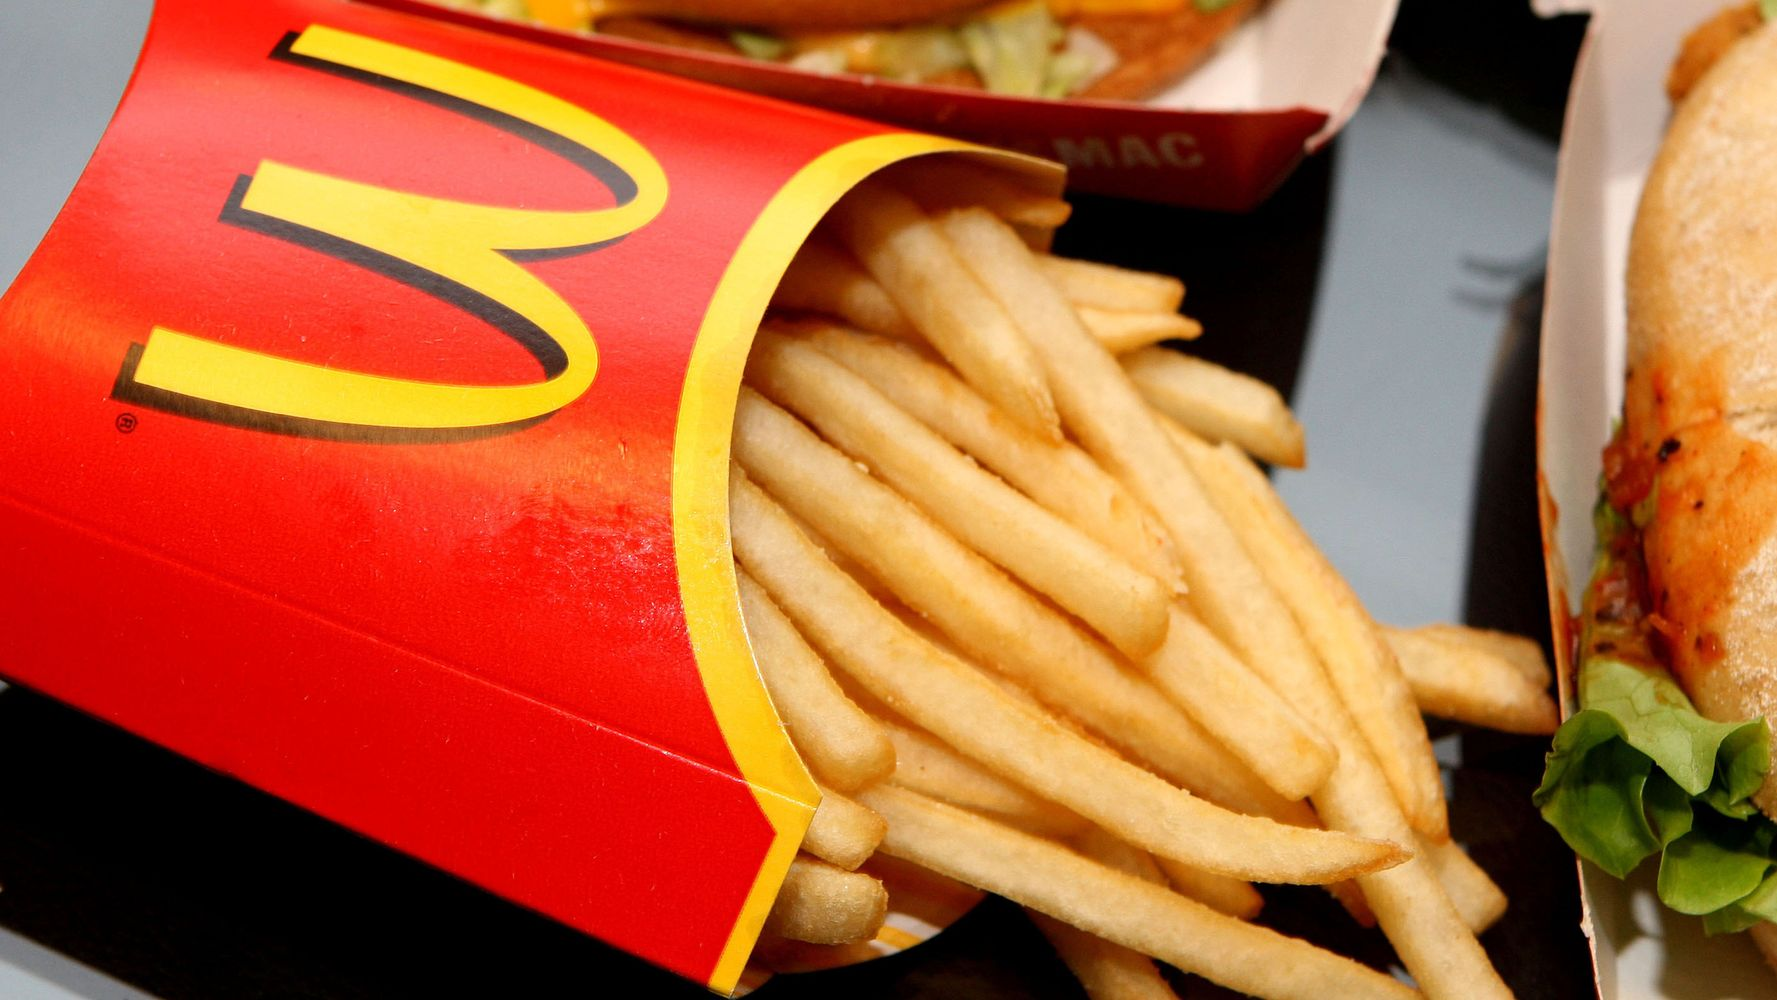 McDonald's And Nando's Aren't Serving You Standard McCain Oven Chips